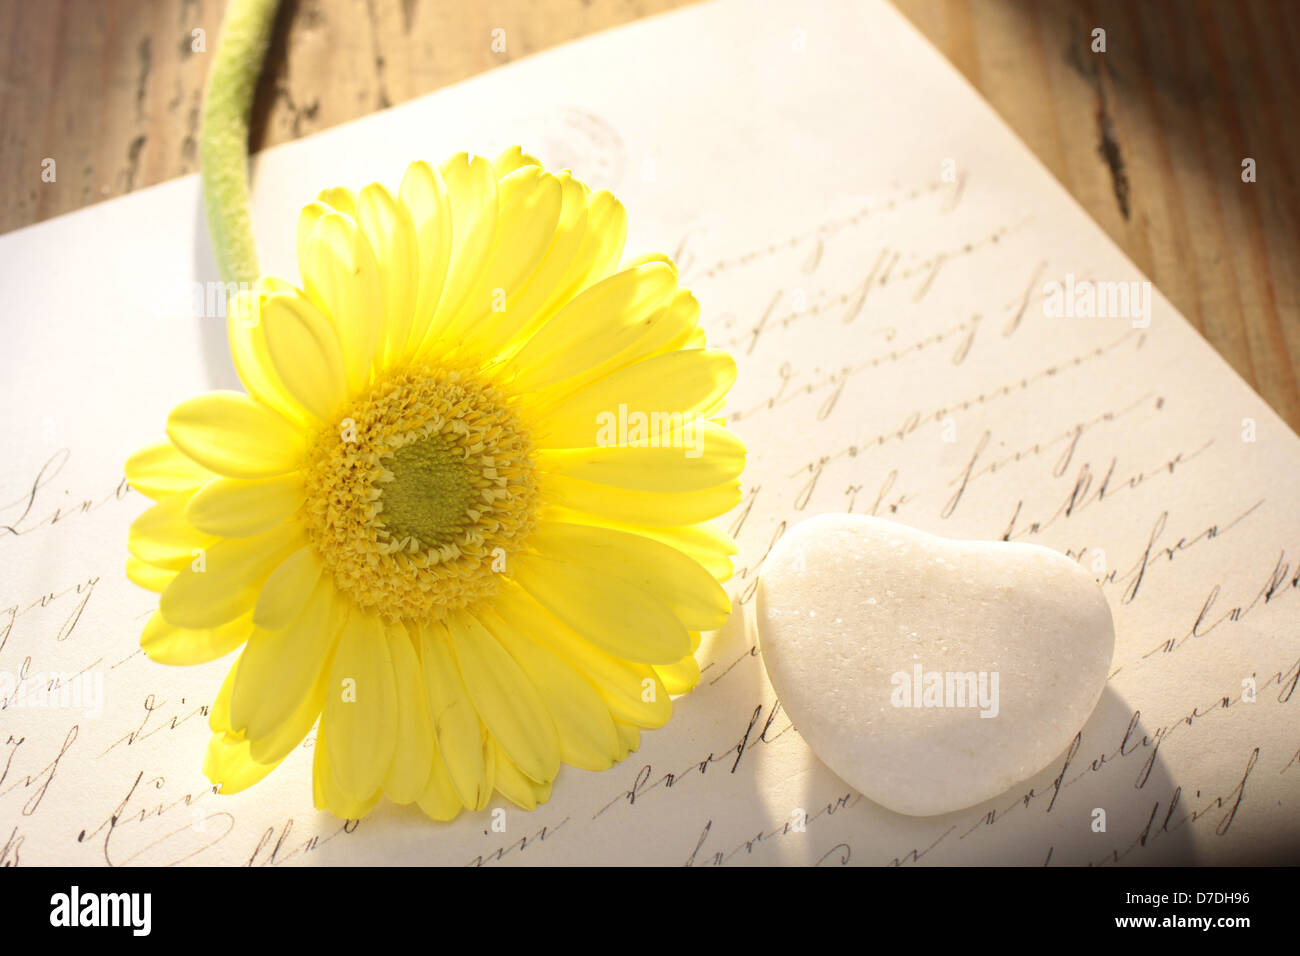 Stone heart with old letter and yellow flower - Stock Image